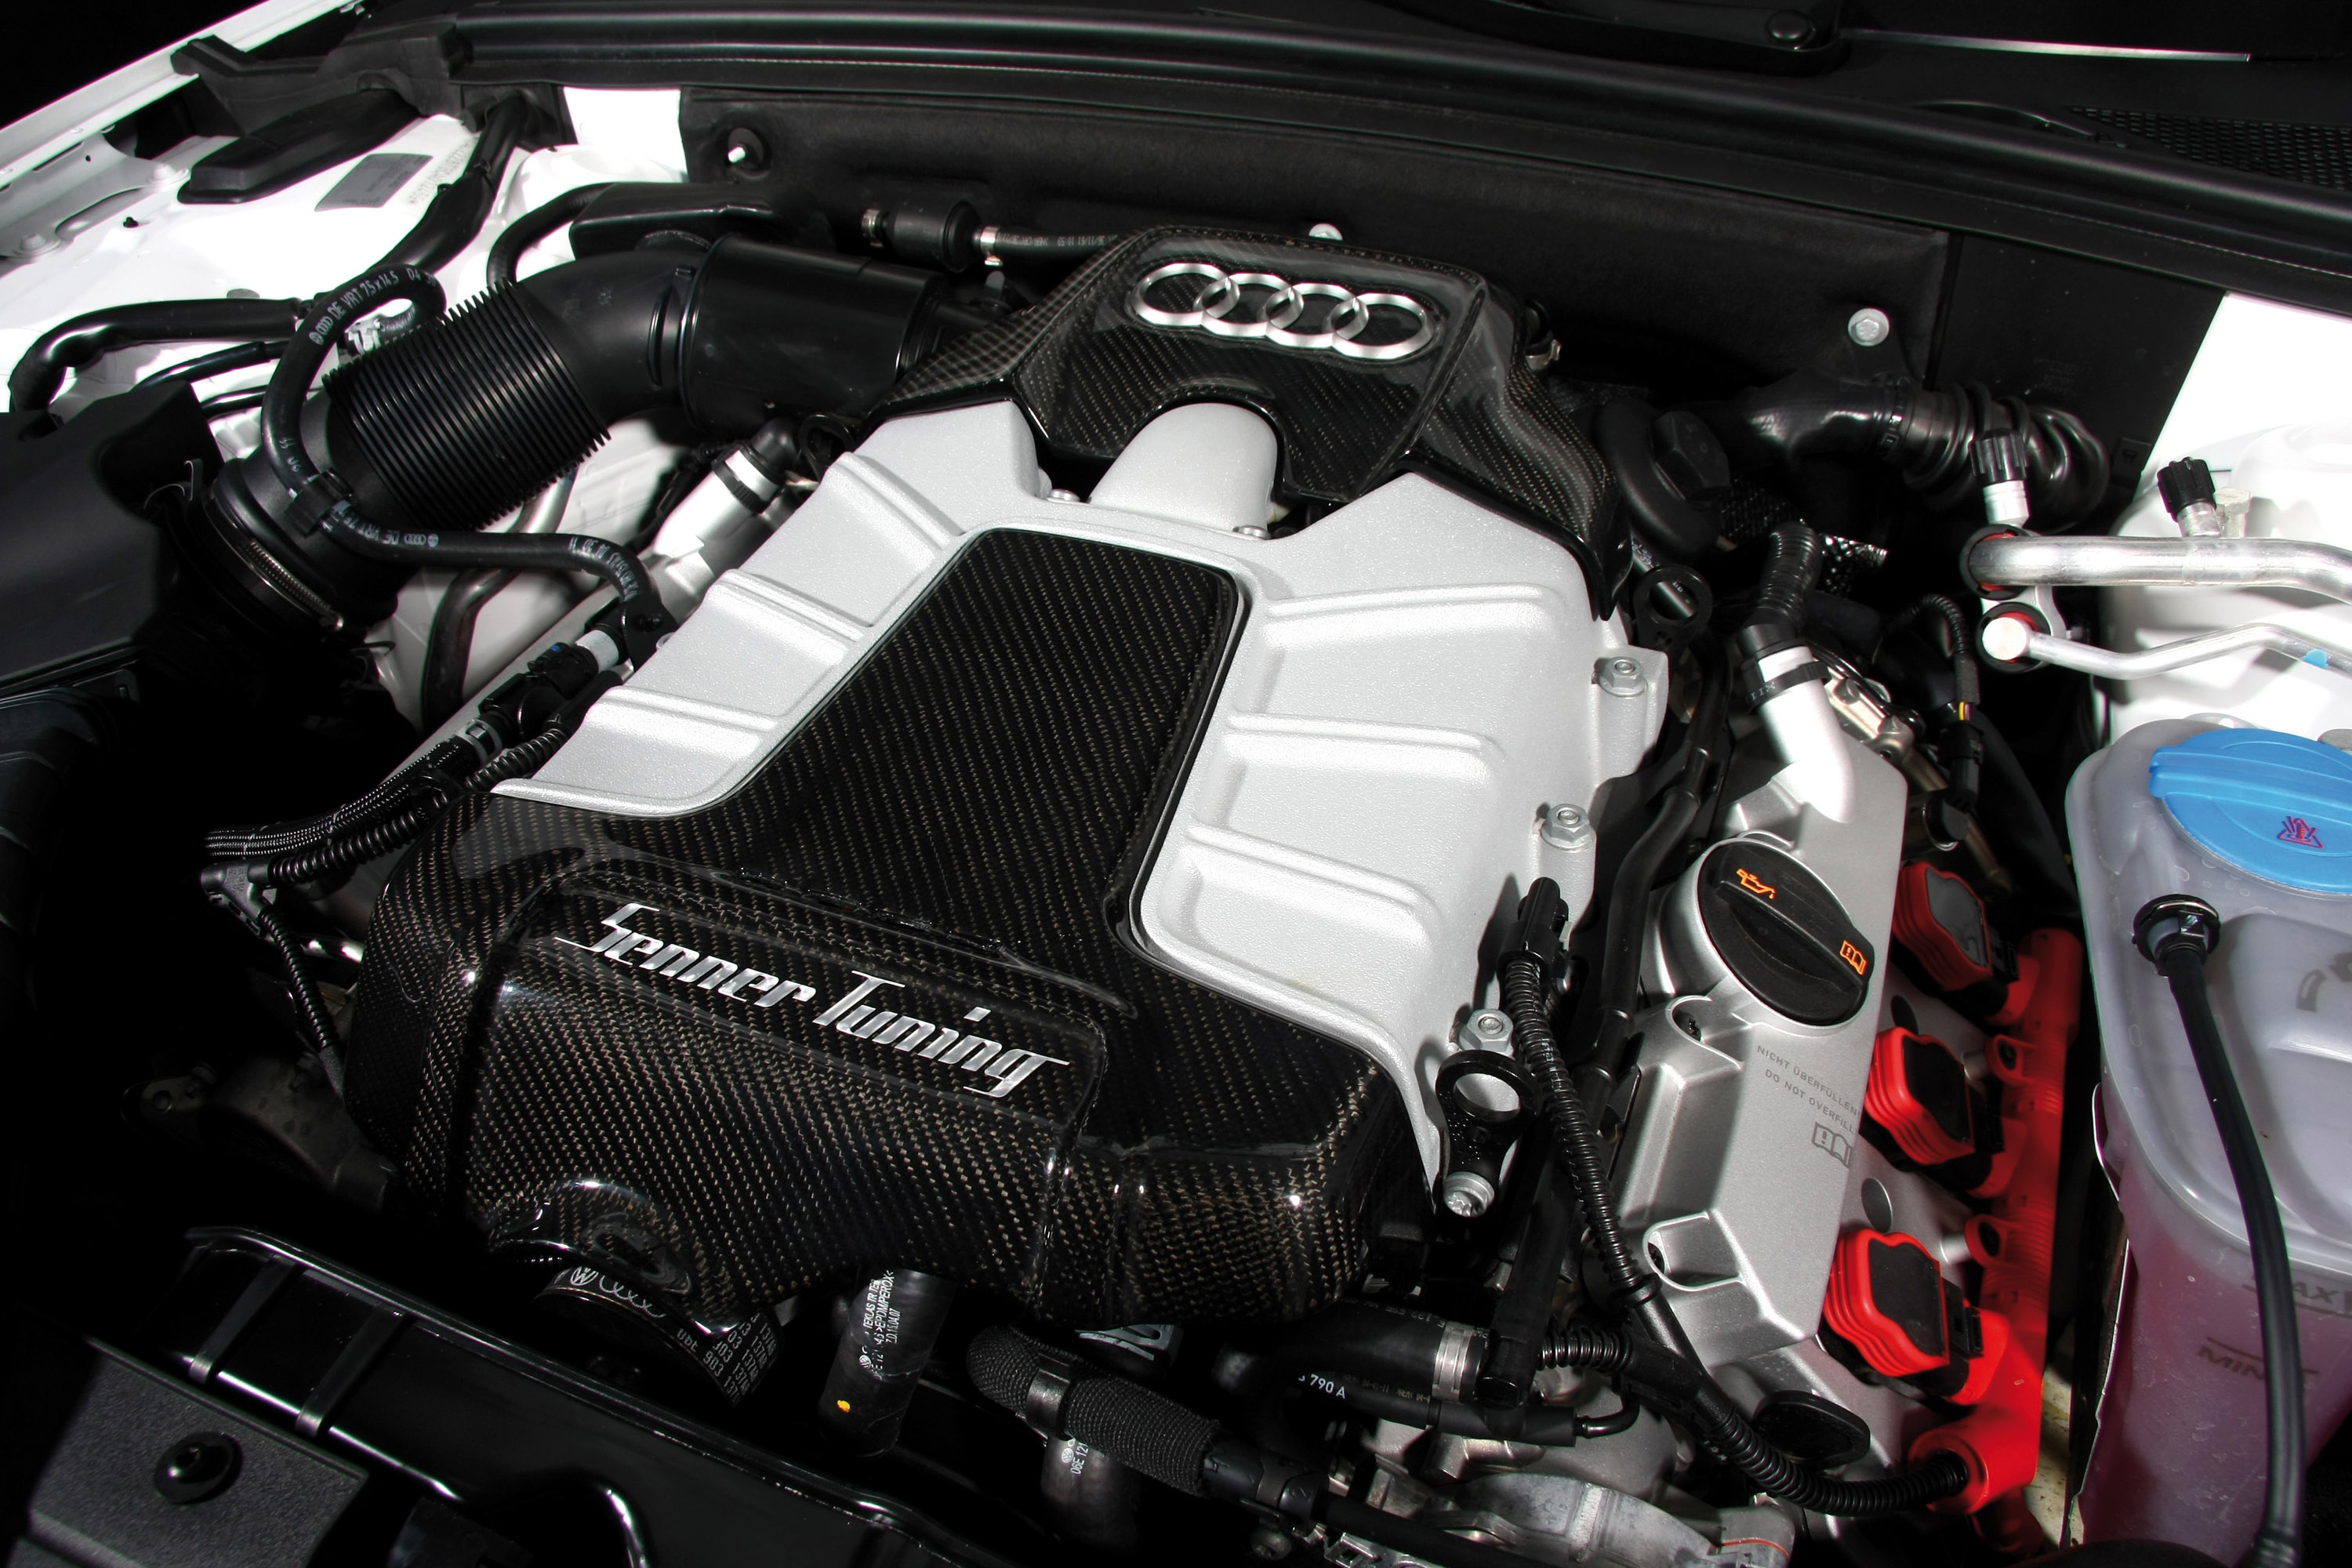 http://www.automobilesreview.com/img/senner-audi-s5-coupe/senner-audi-s5-coupe-03.jpg